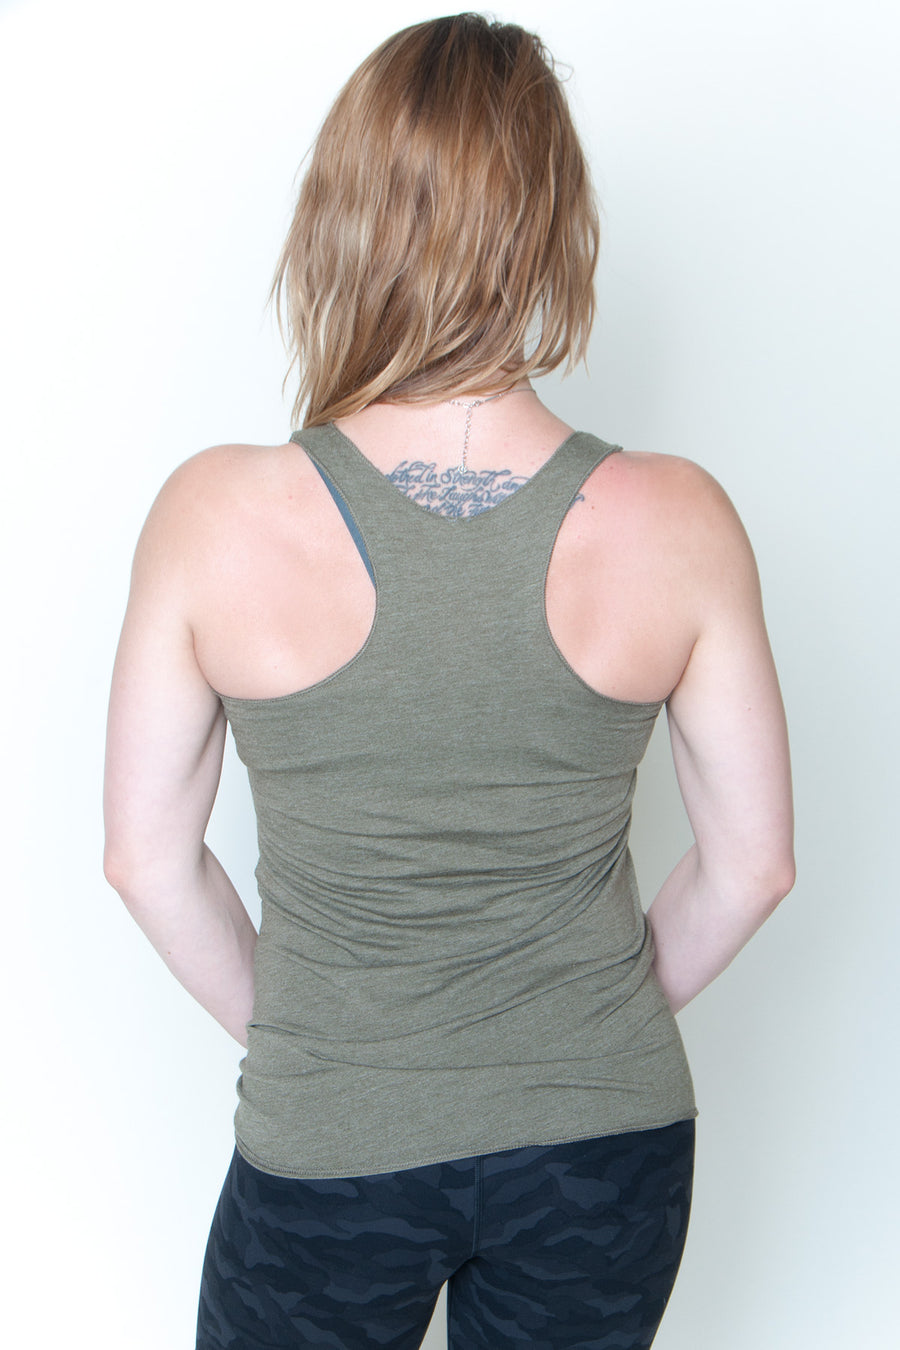 Women's Racerback Tank - United We Boom Explosion Olive/Tan